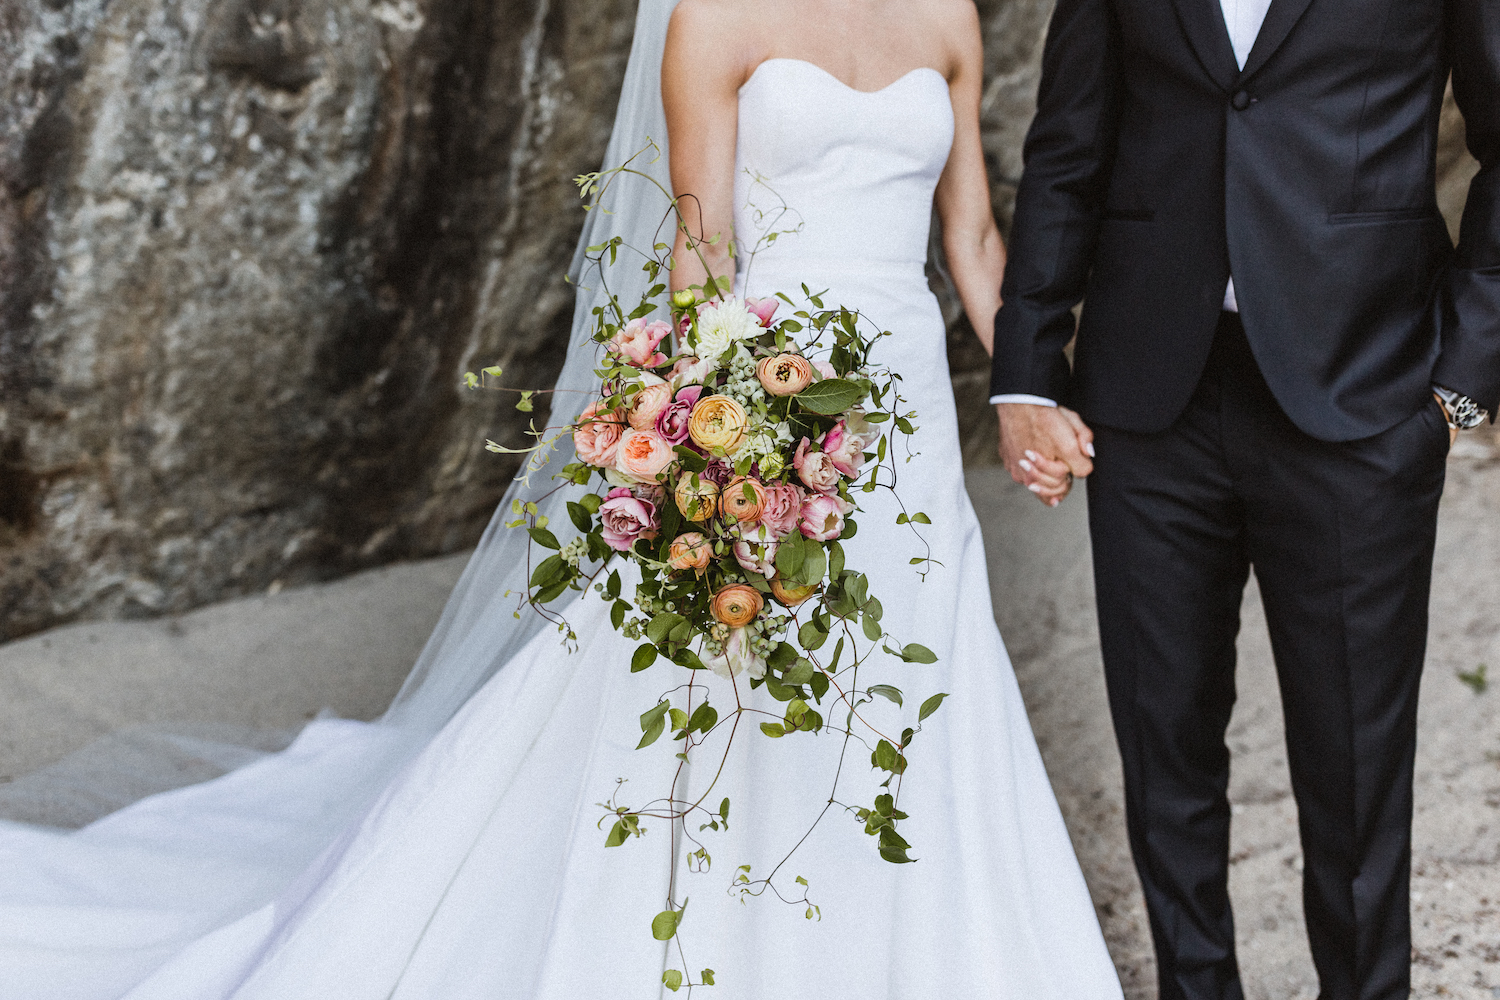 Julianne Hough and Brooks Laich Wedding - Wild Bloom Floral - Sarah Falugo Photography - Simply Troy Event Design 18.jpeg